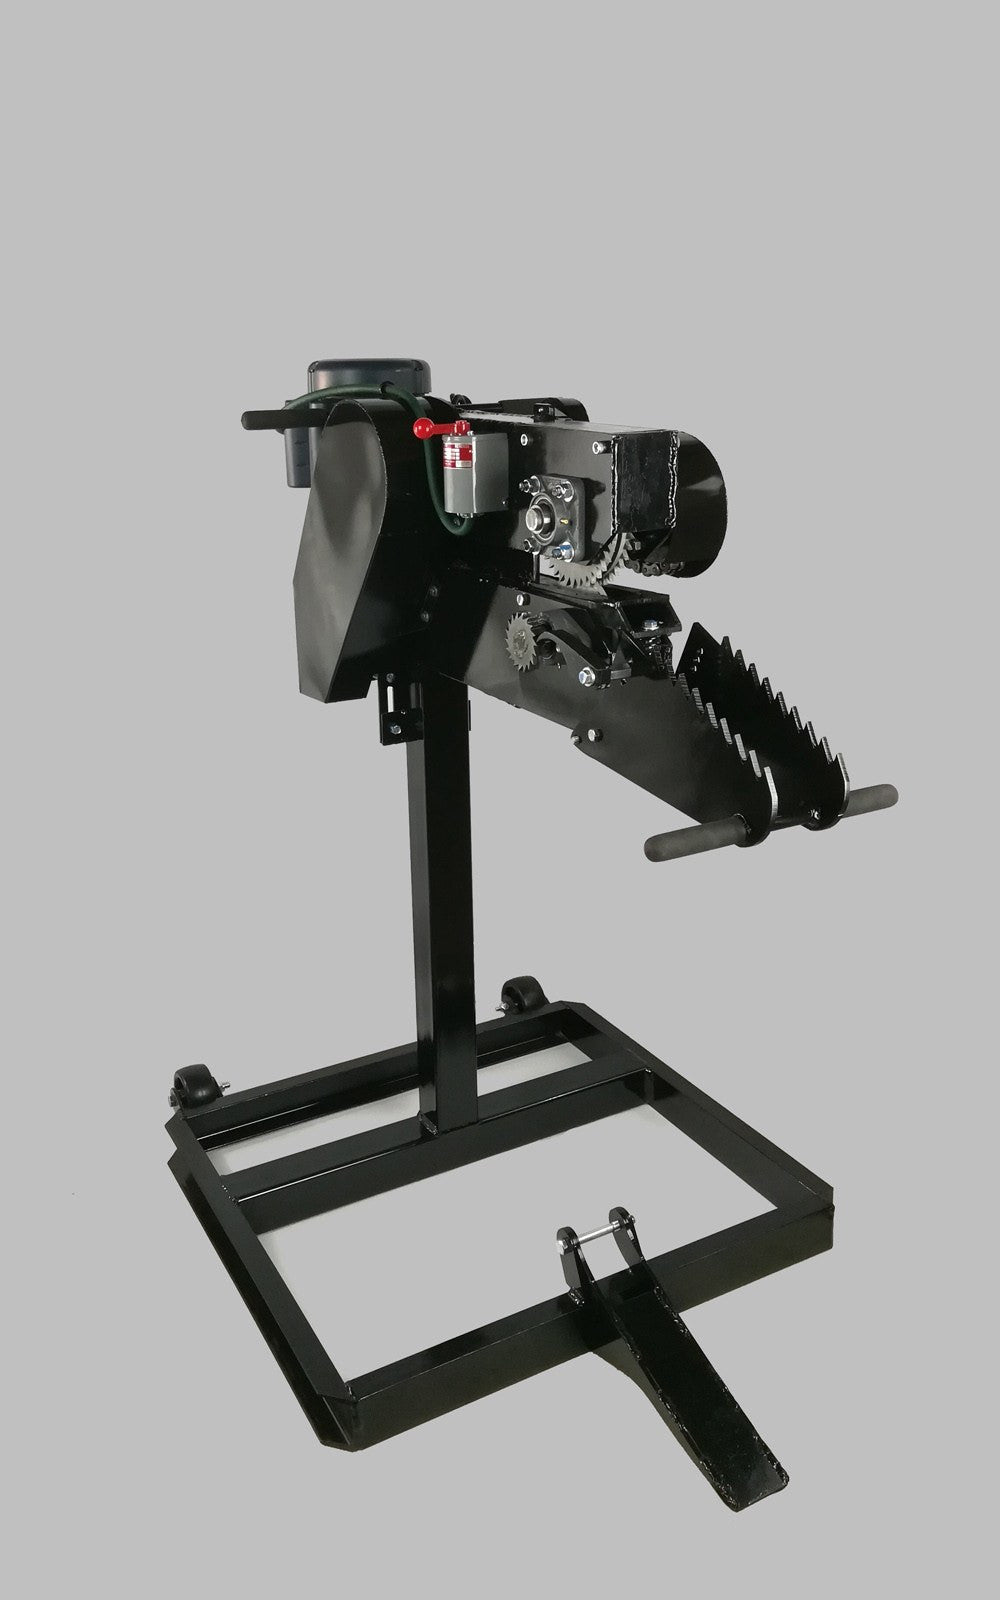 Tc2 1 Tire Tread Cutter For Sale Engineering Amp Equipment